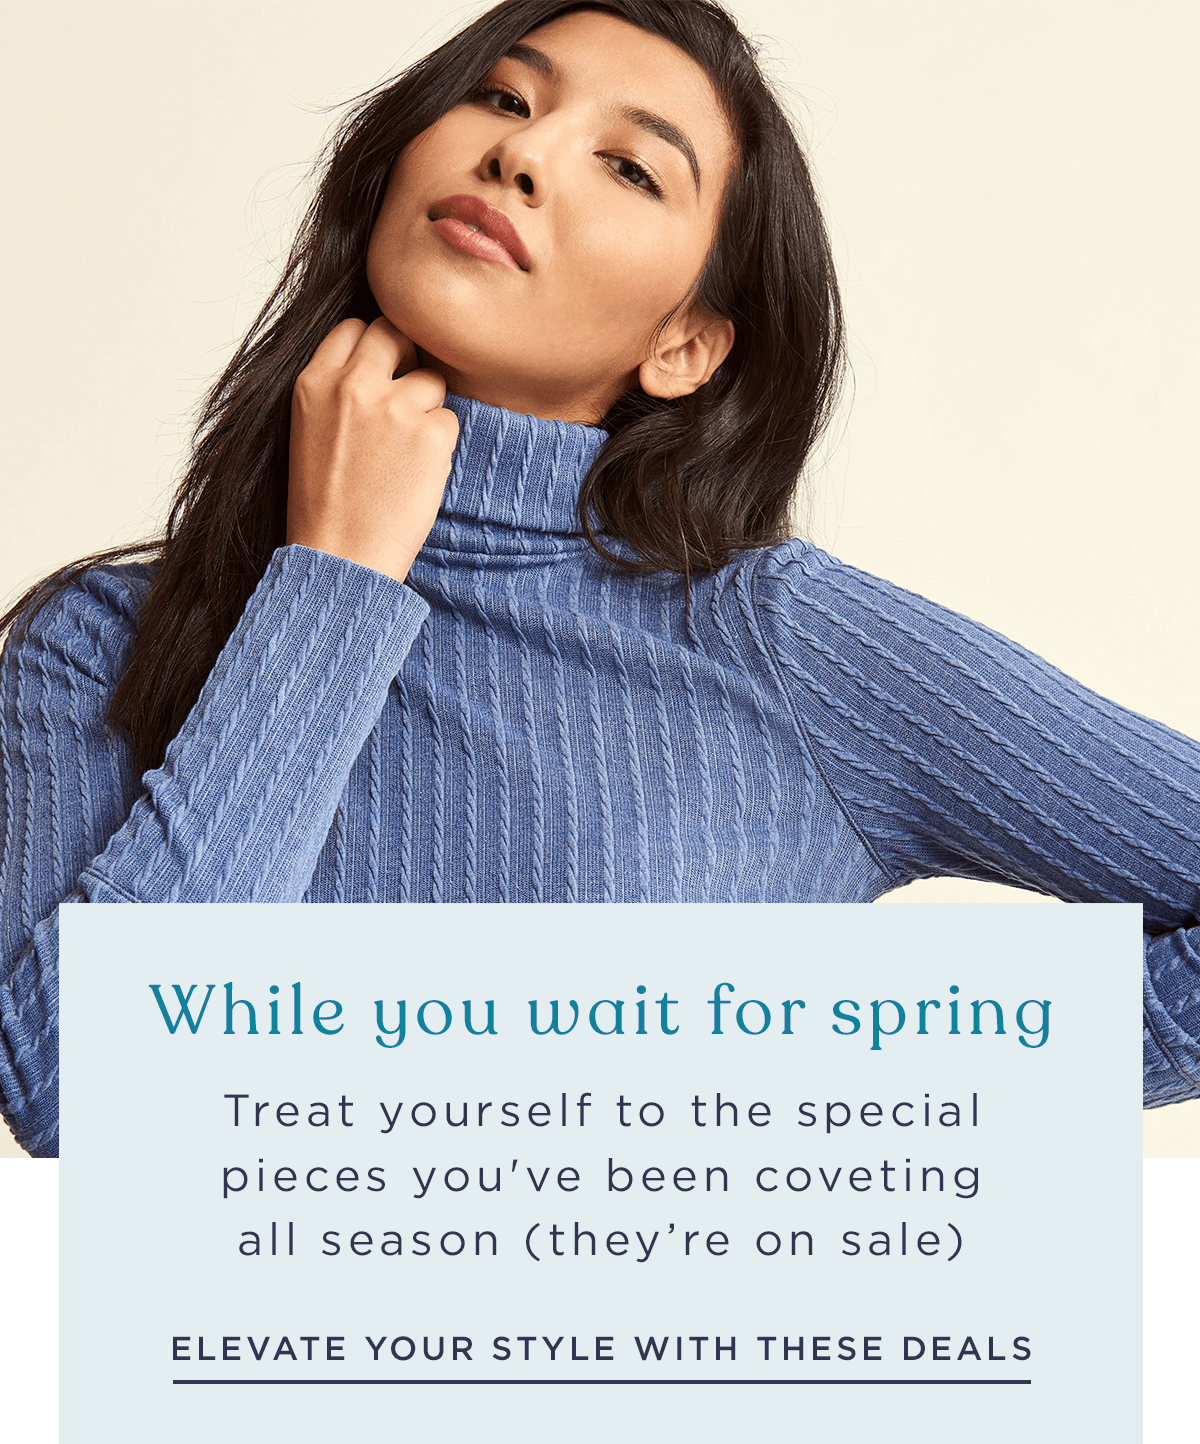 Treat yourself to those special pieces you've been coveting all season (they're on sale)